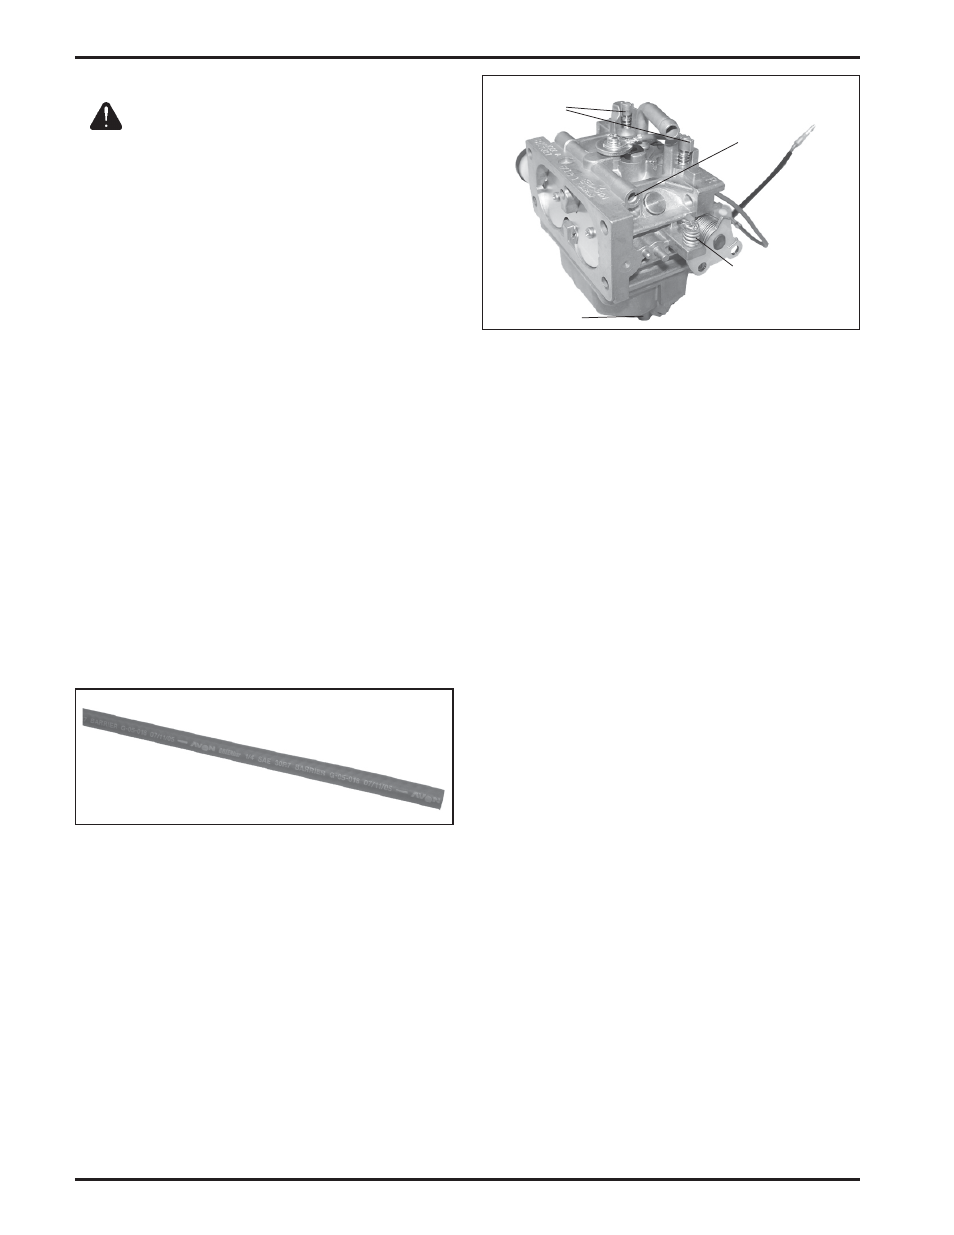 Kohler Command Pro CH980 User Manual | Page 14 / 20 | Also for